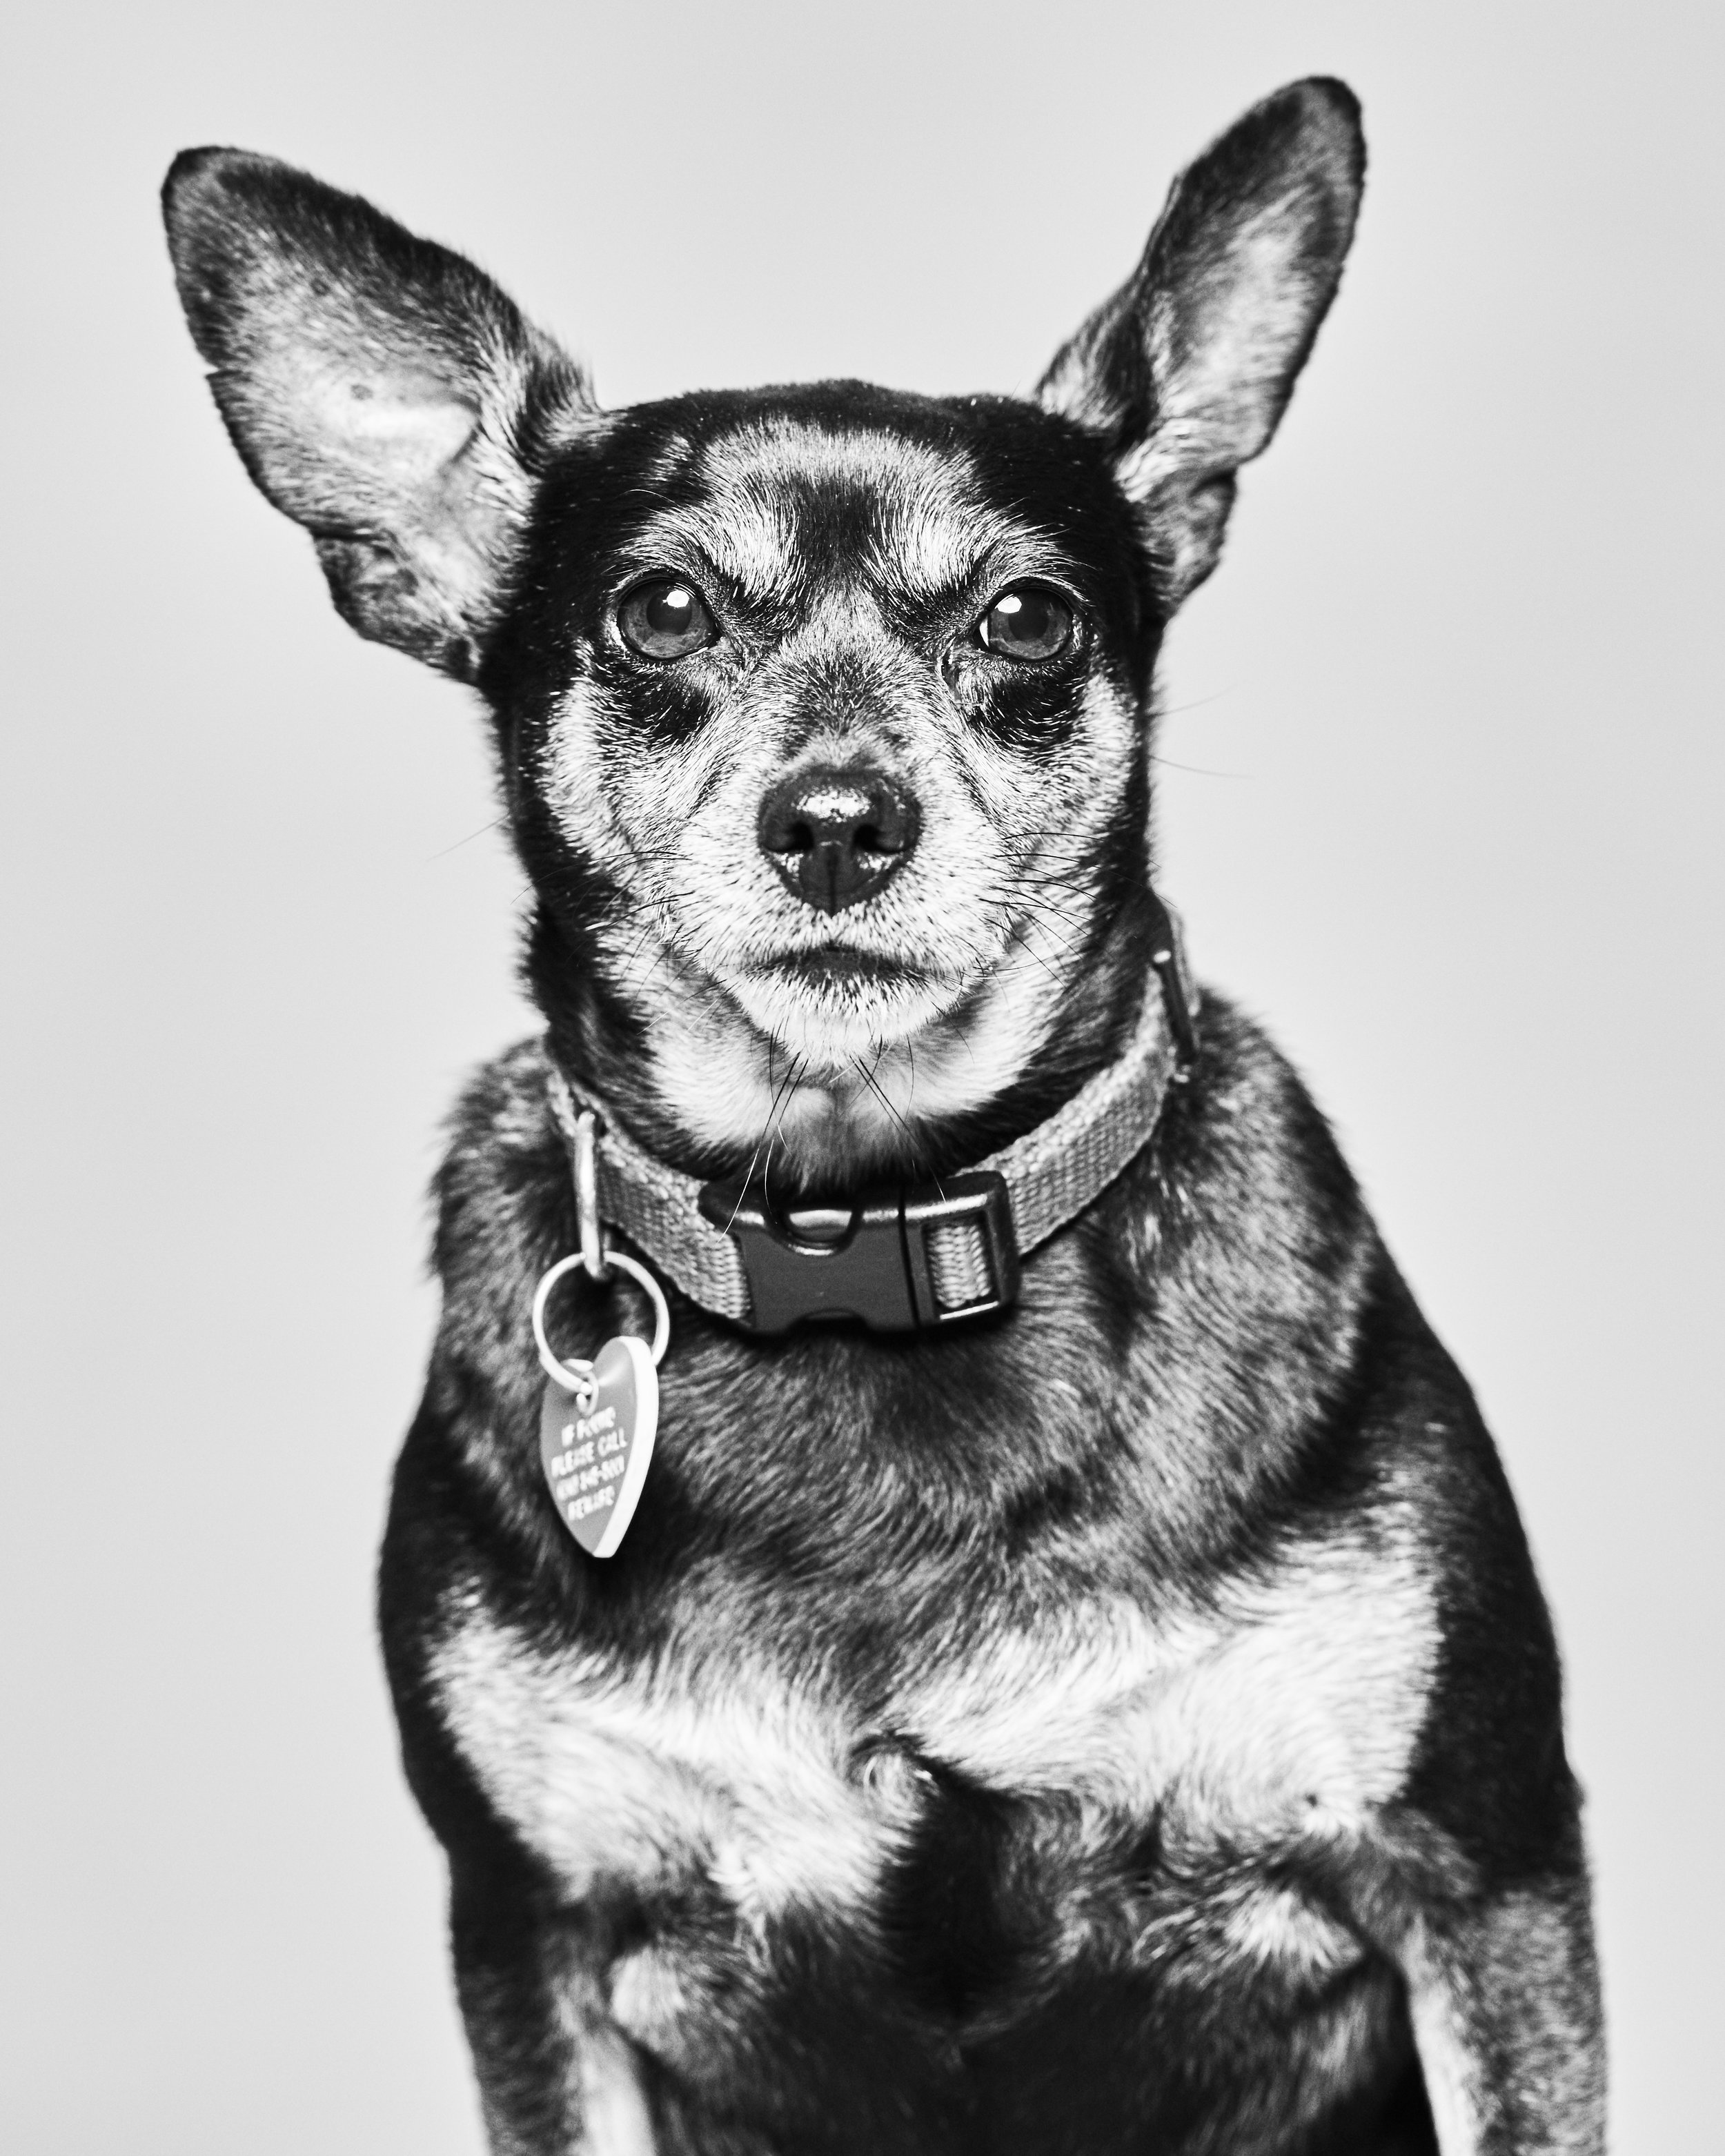 """This 5 year old, 11 lb min pin mix quickly earned the nickname """"Flirty Gertie""""amongst all her friends. She doesn't really care if you are a boy or a girl, she will fall in love with you and think you're perfect just the way you are. She enjoys human and canine companionship and is easy to befriend. Once she gets to know you she will let you take it up a notch and pick her up and may even insist on a doggie massage. Any respectful girl wants to get to know a person before she gets too close."""